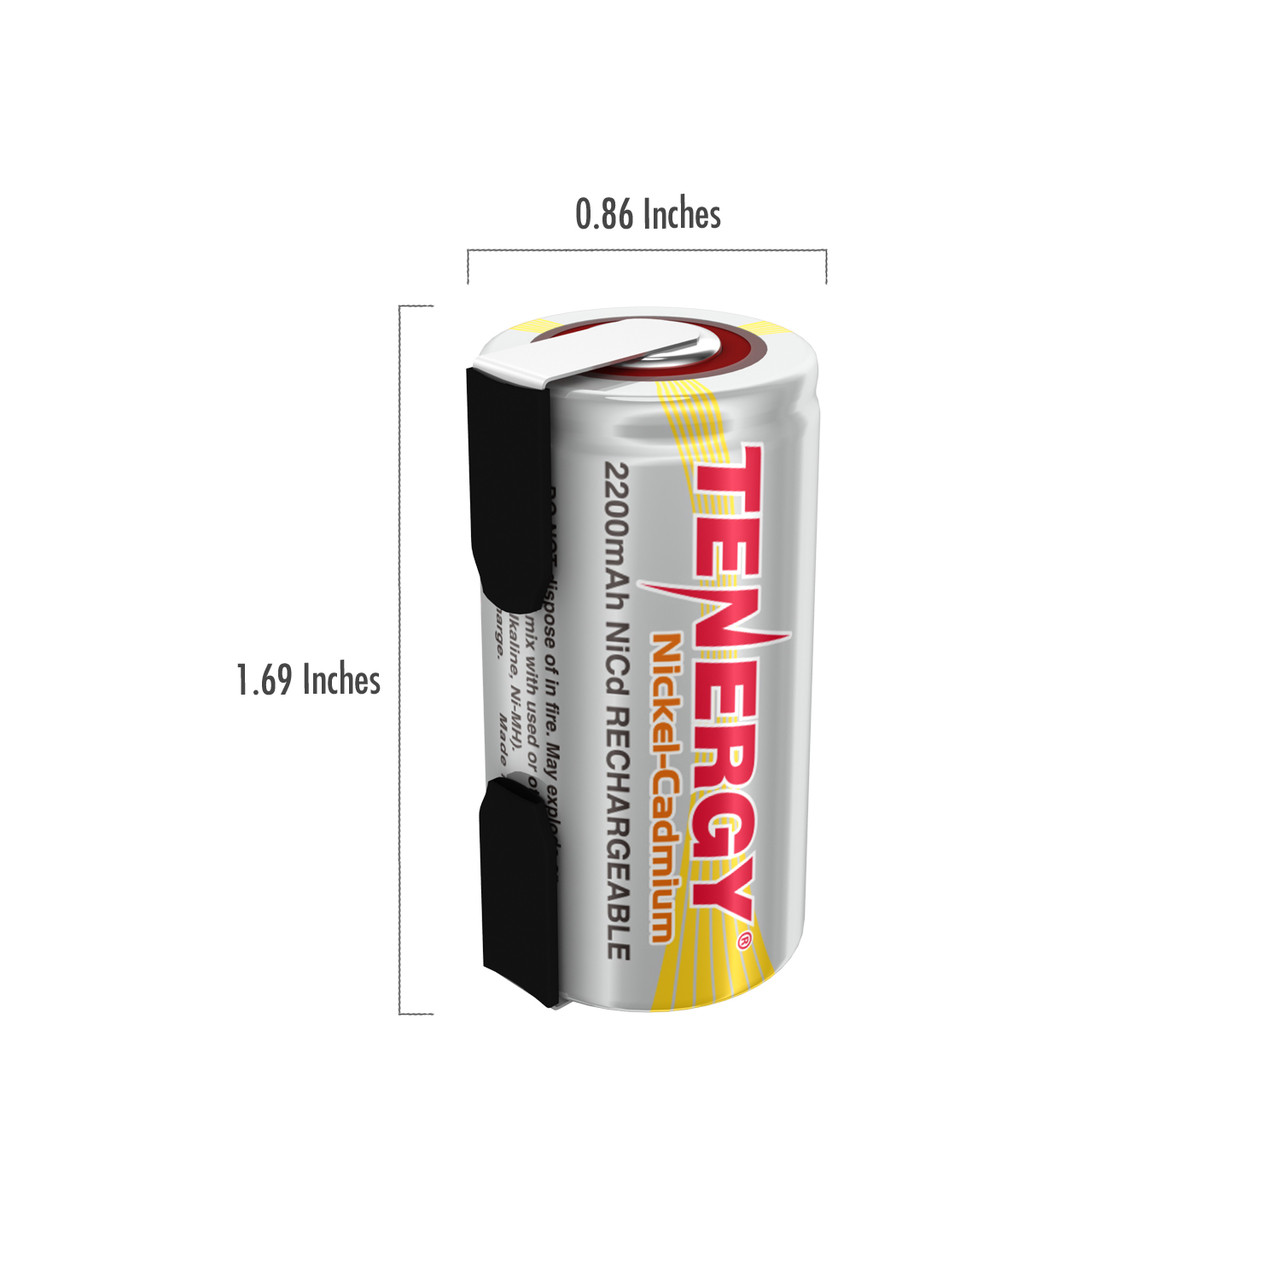 Tenergy SubC 2200mAh NiCd Flat Top Rechargeable Battery